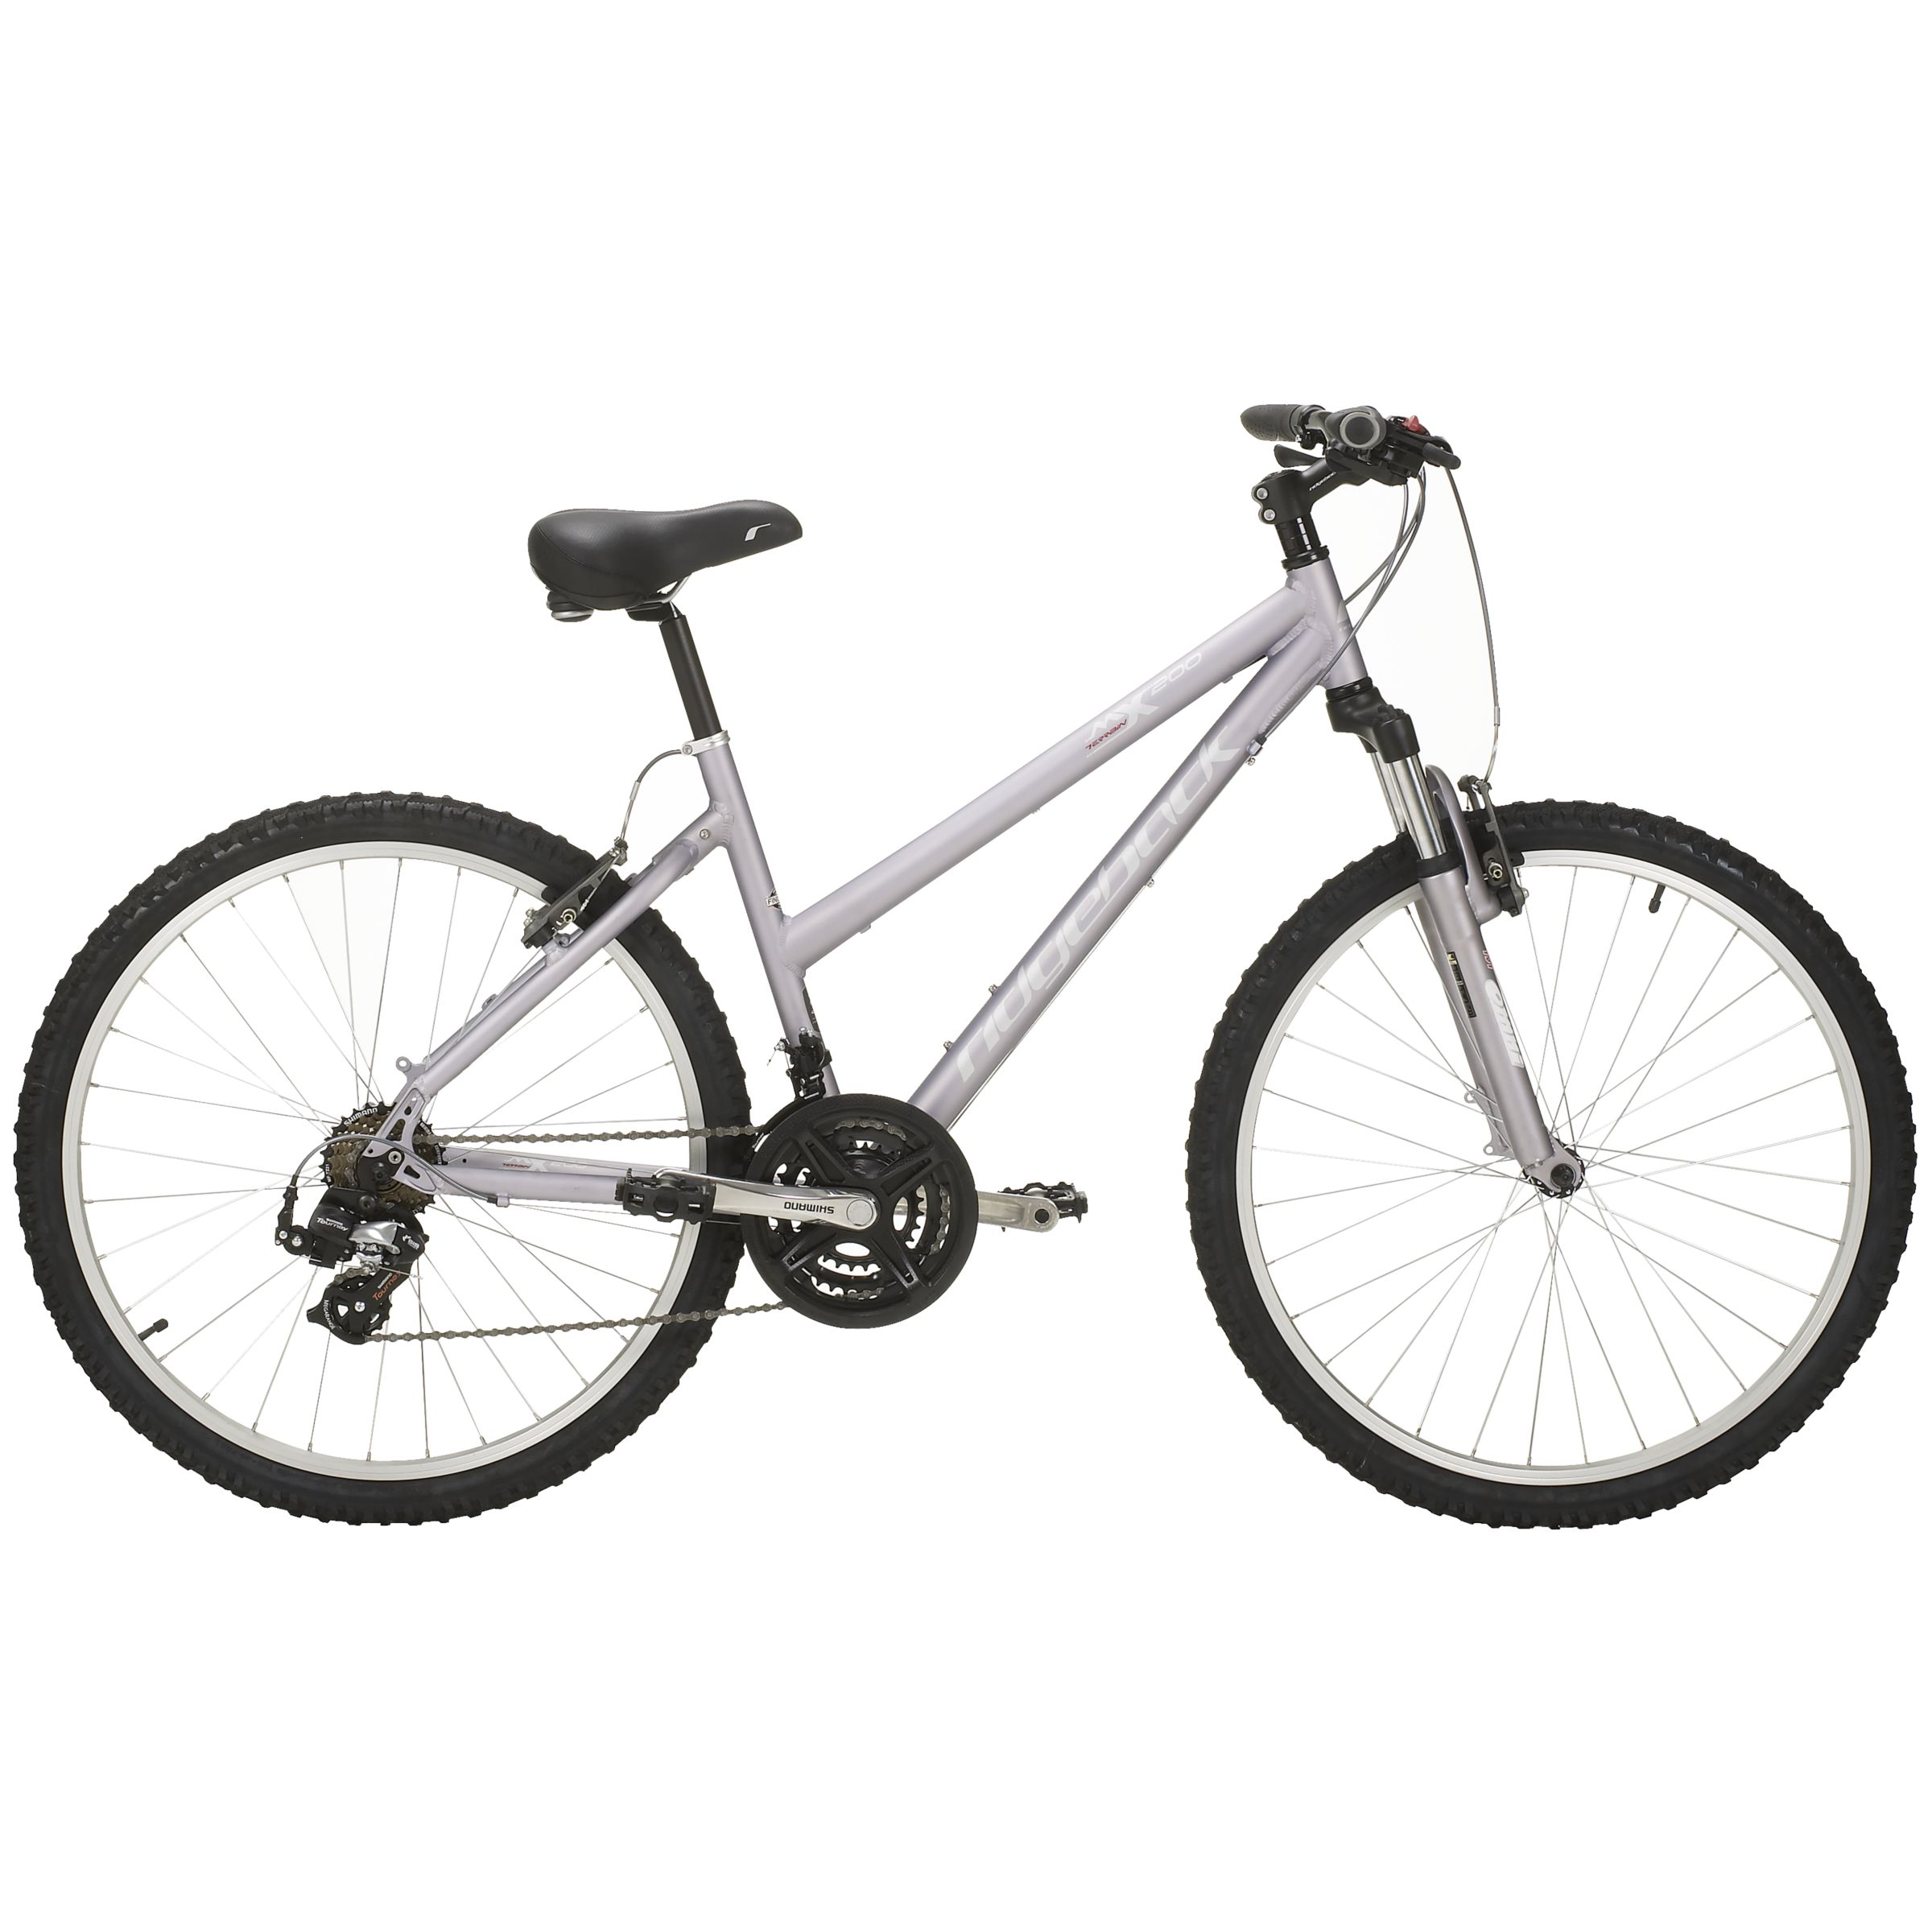 MX200 Womens Mountain Bike, Silver